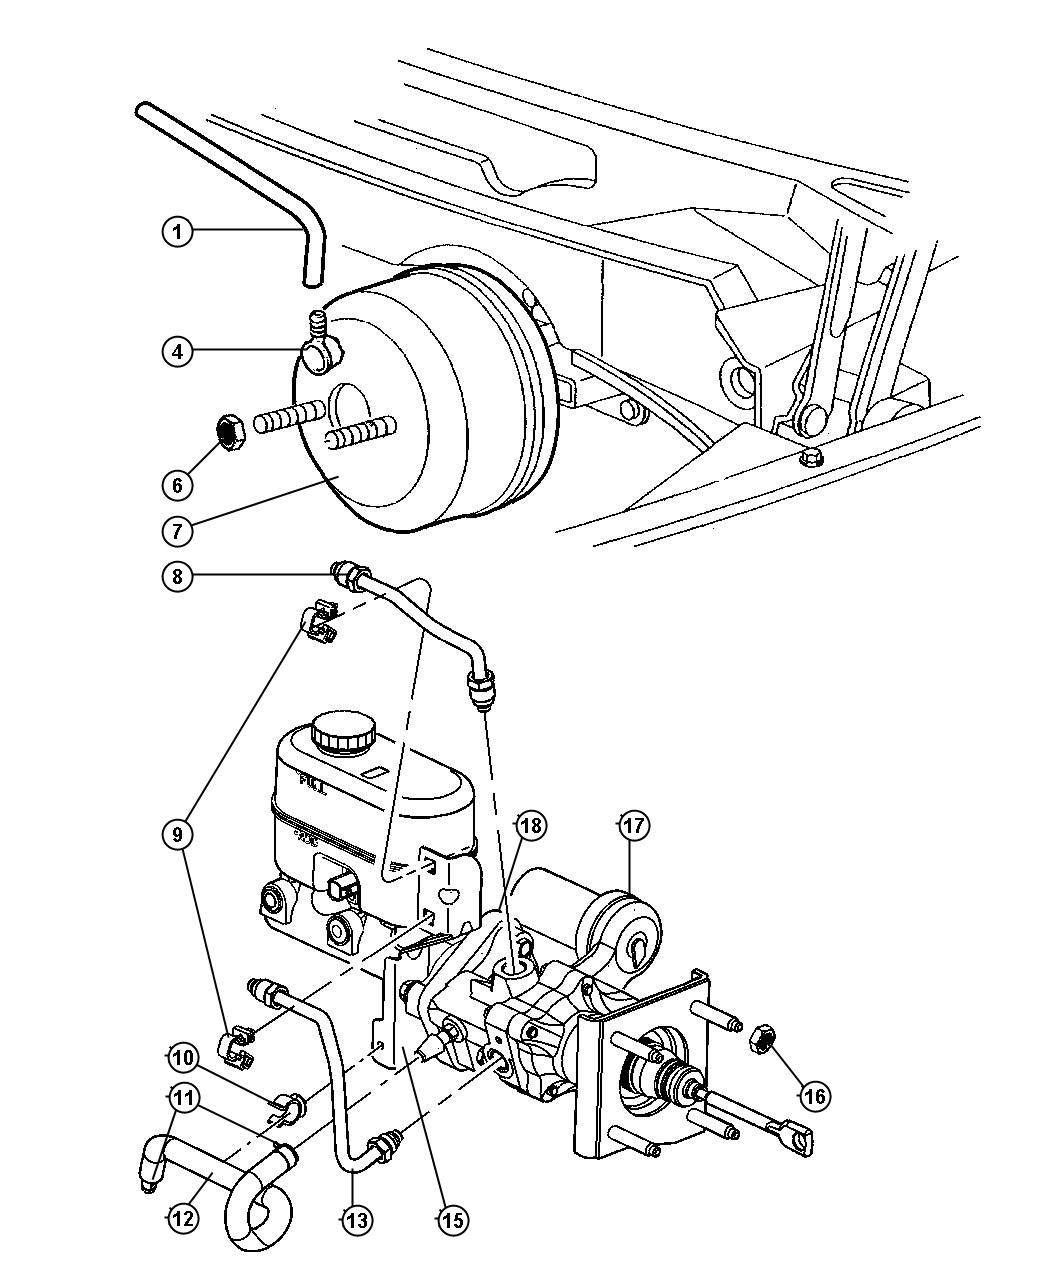 hight resolution of parts diagram for 1997 dodge ram 2500 4x4 parts free dodge 4x4 actuator diagram drivetrain diagram